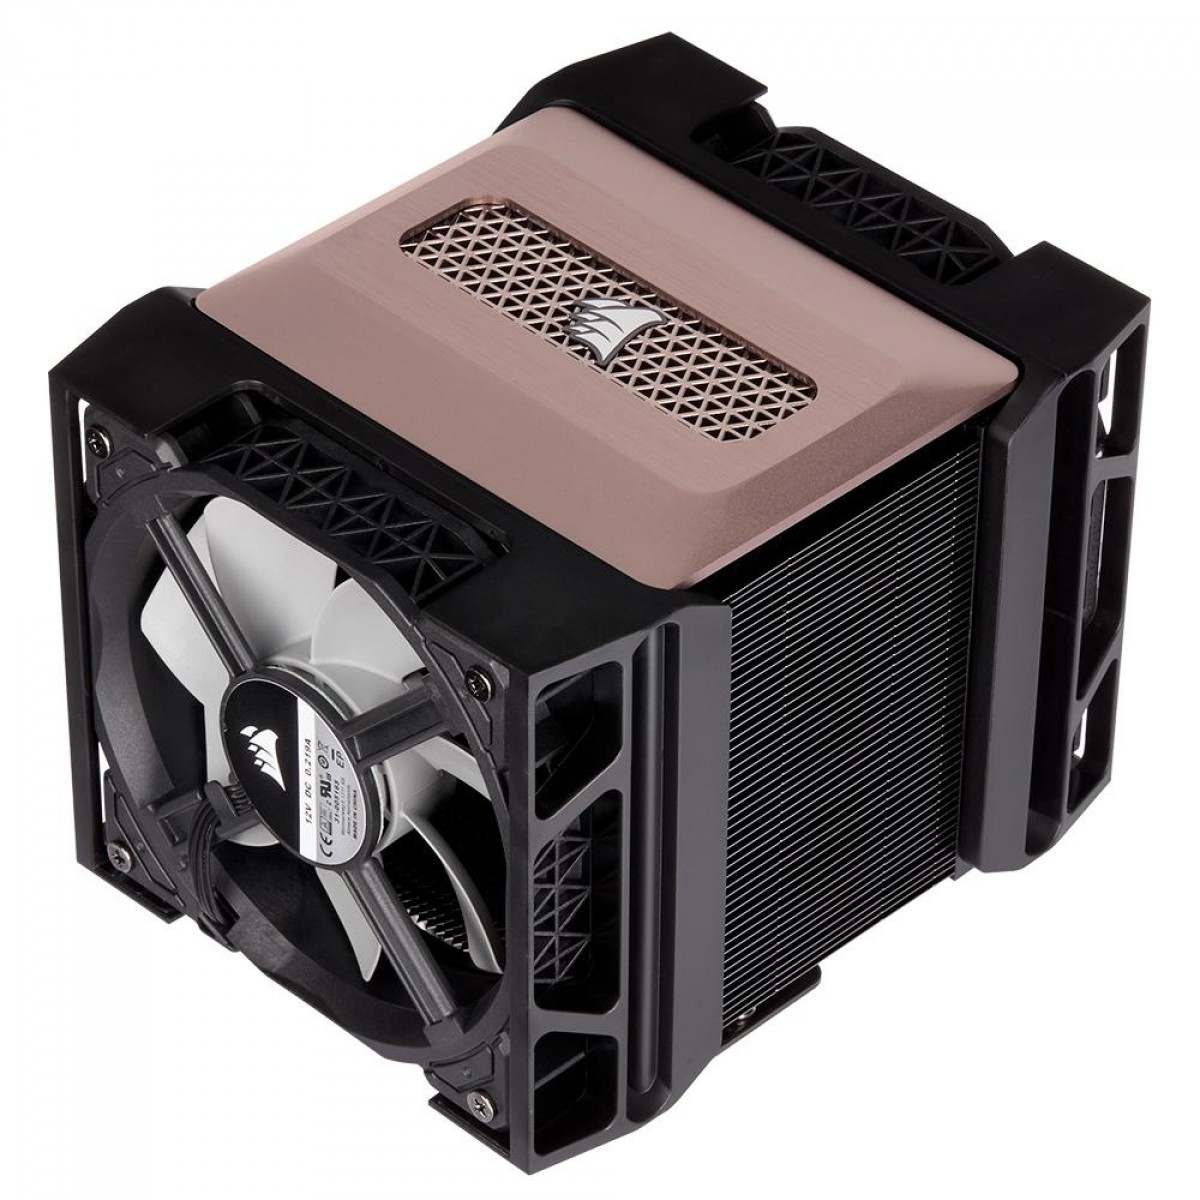 Cooler para Processador Corsair A500, Fan Duplo, Intel-AMD, CT-9010003-WW